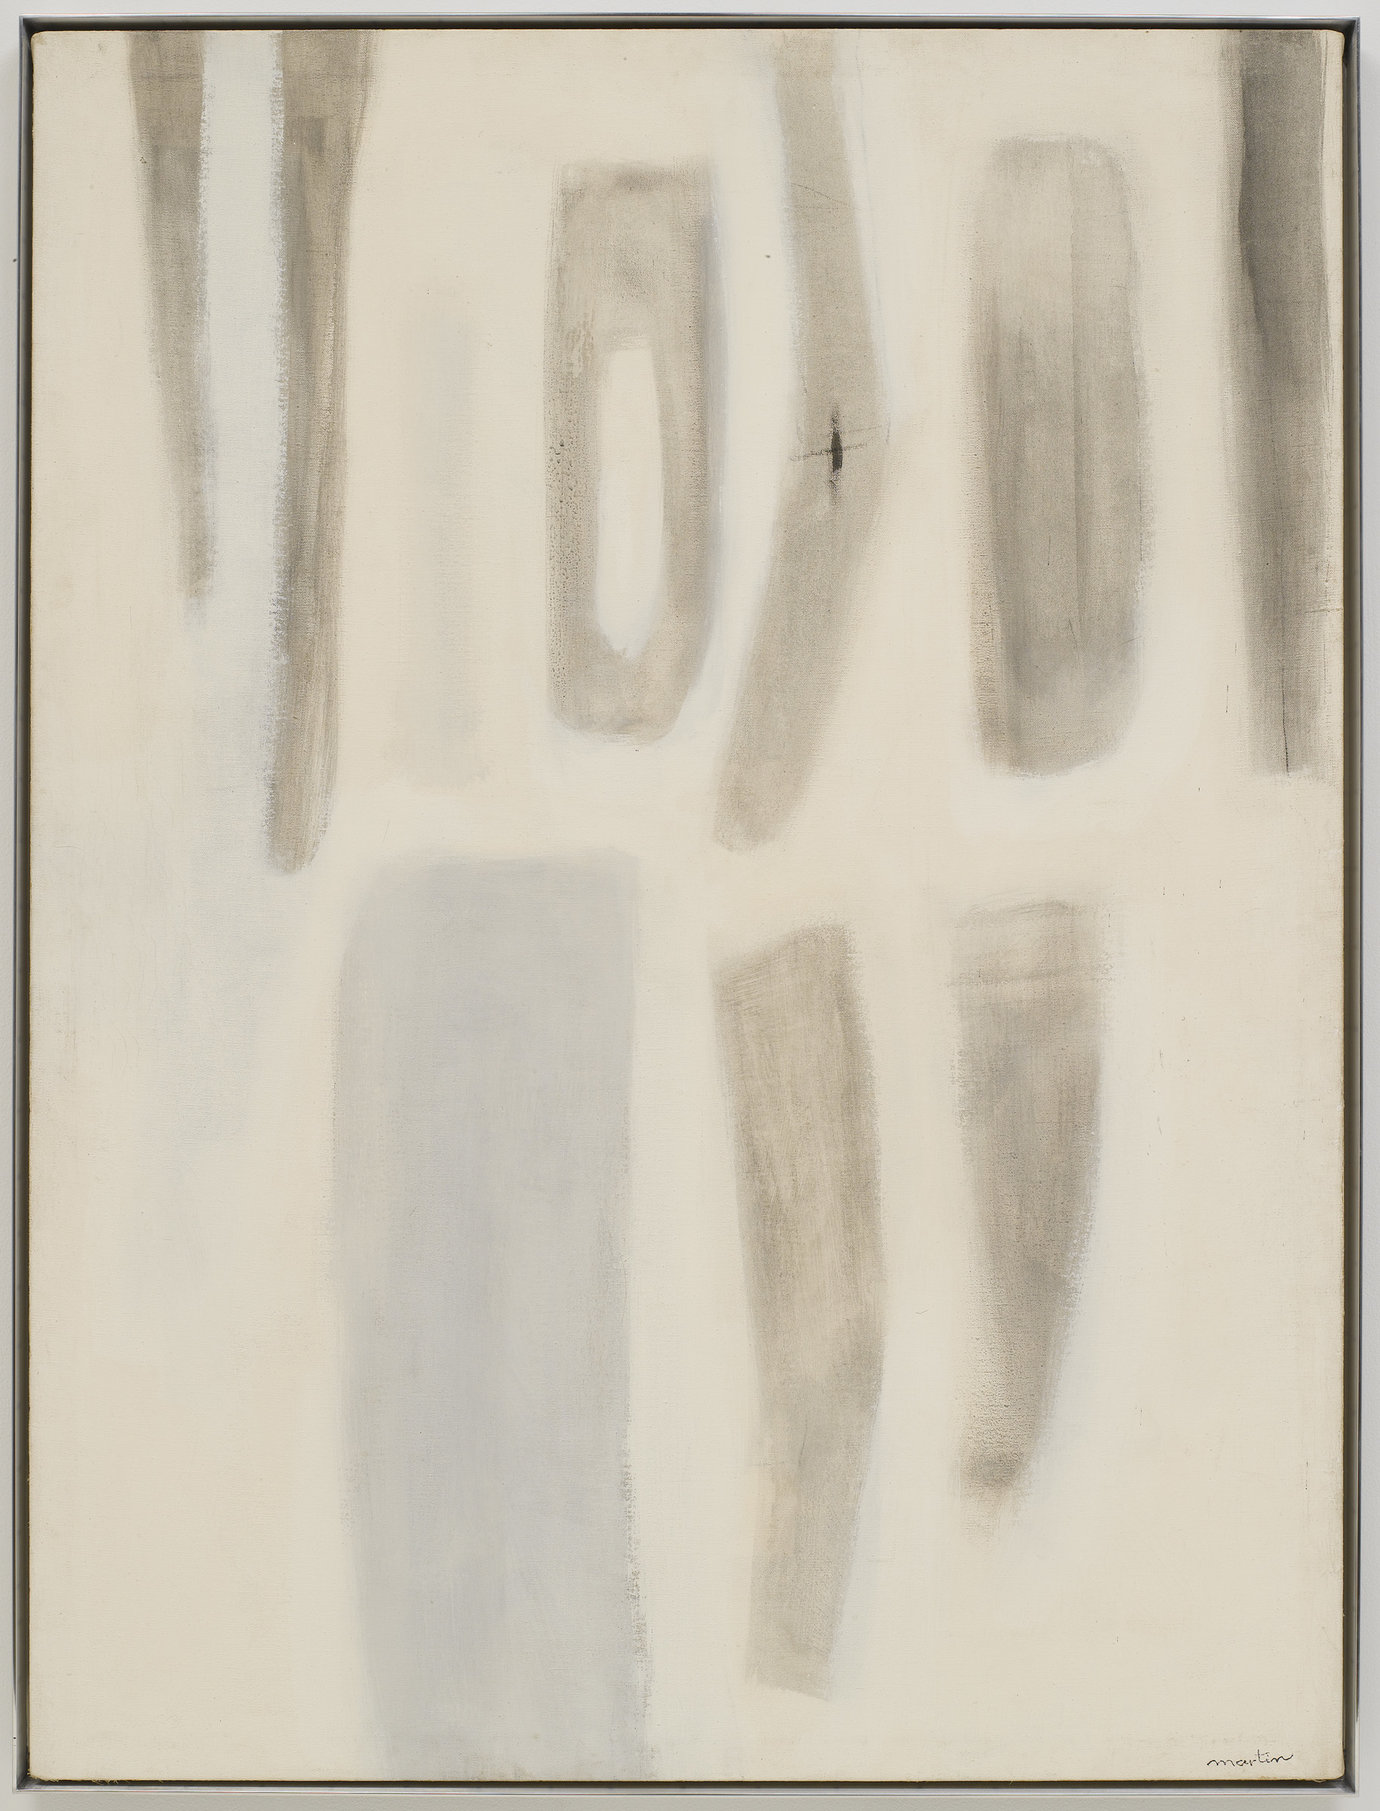 ", 1955-1956. Oil on canvas, 48"" x 36"" (121.9 cm x 91.4 cm)."